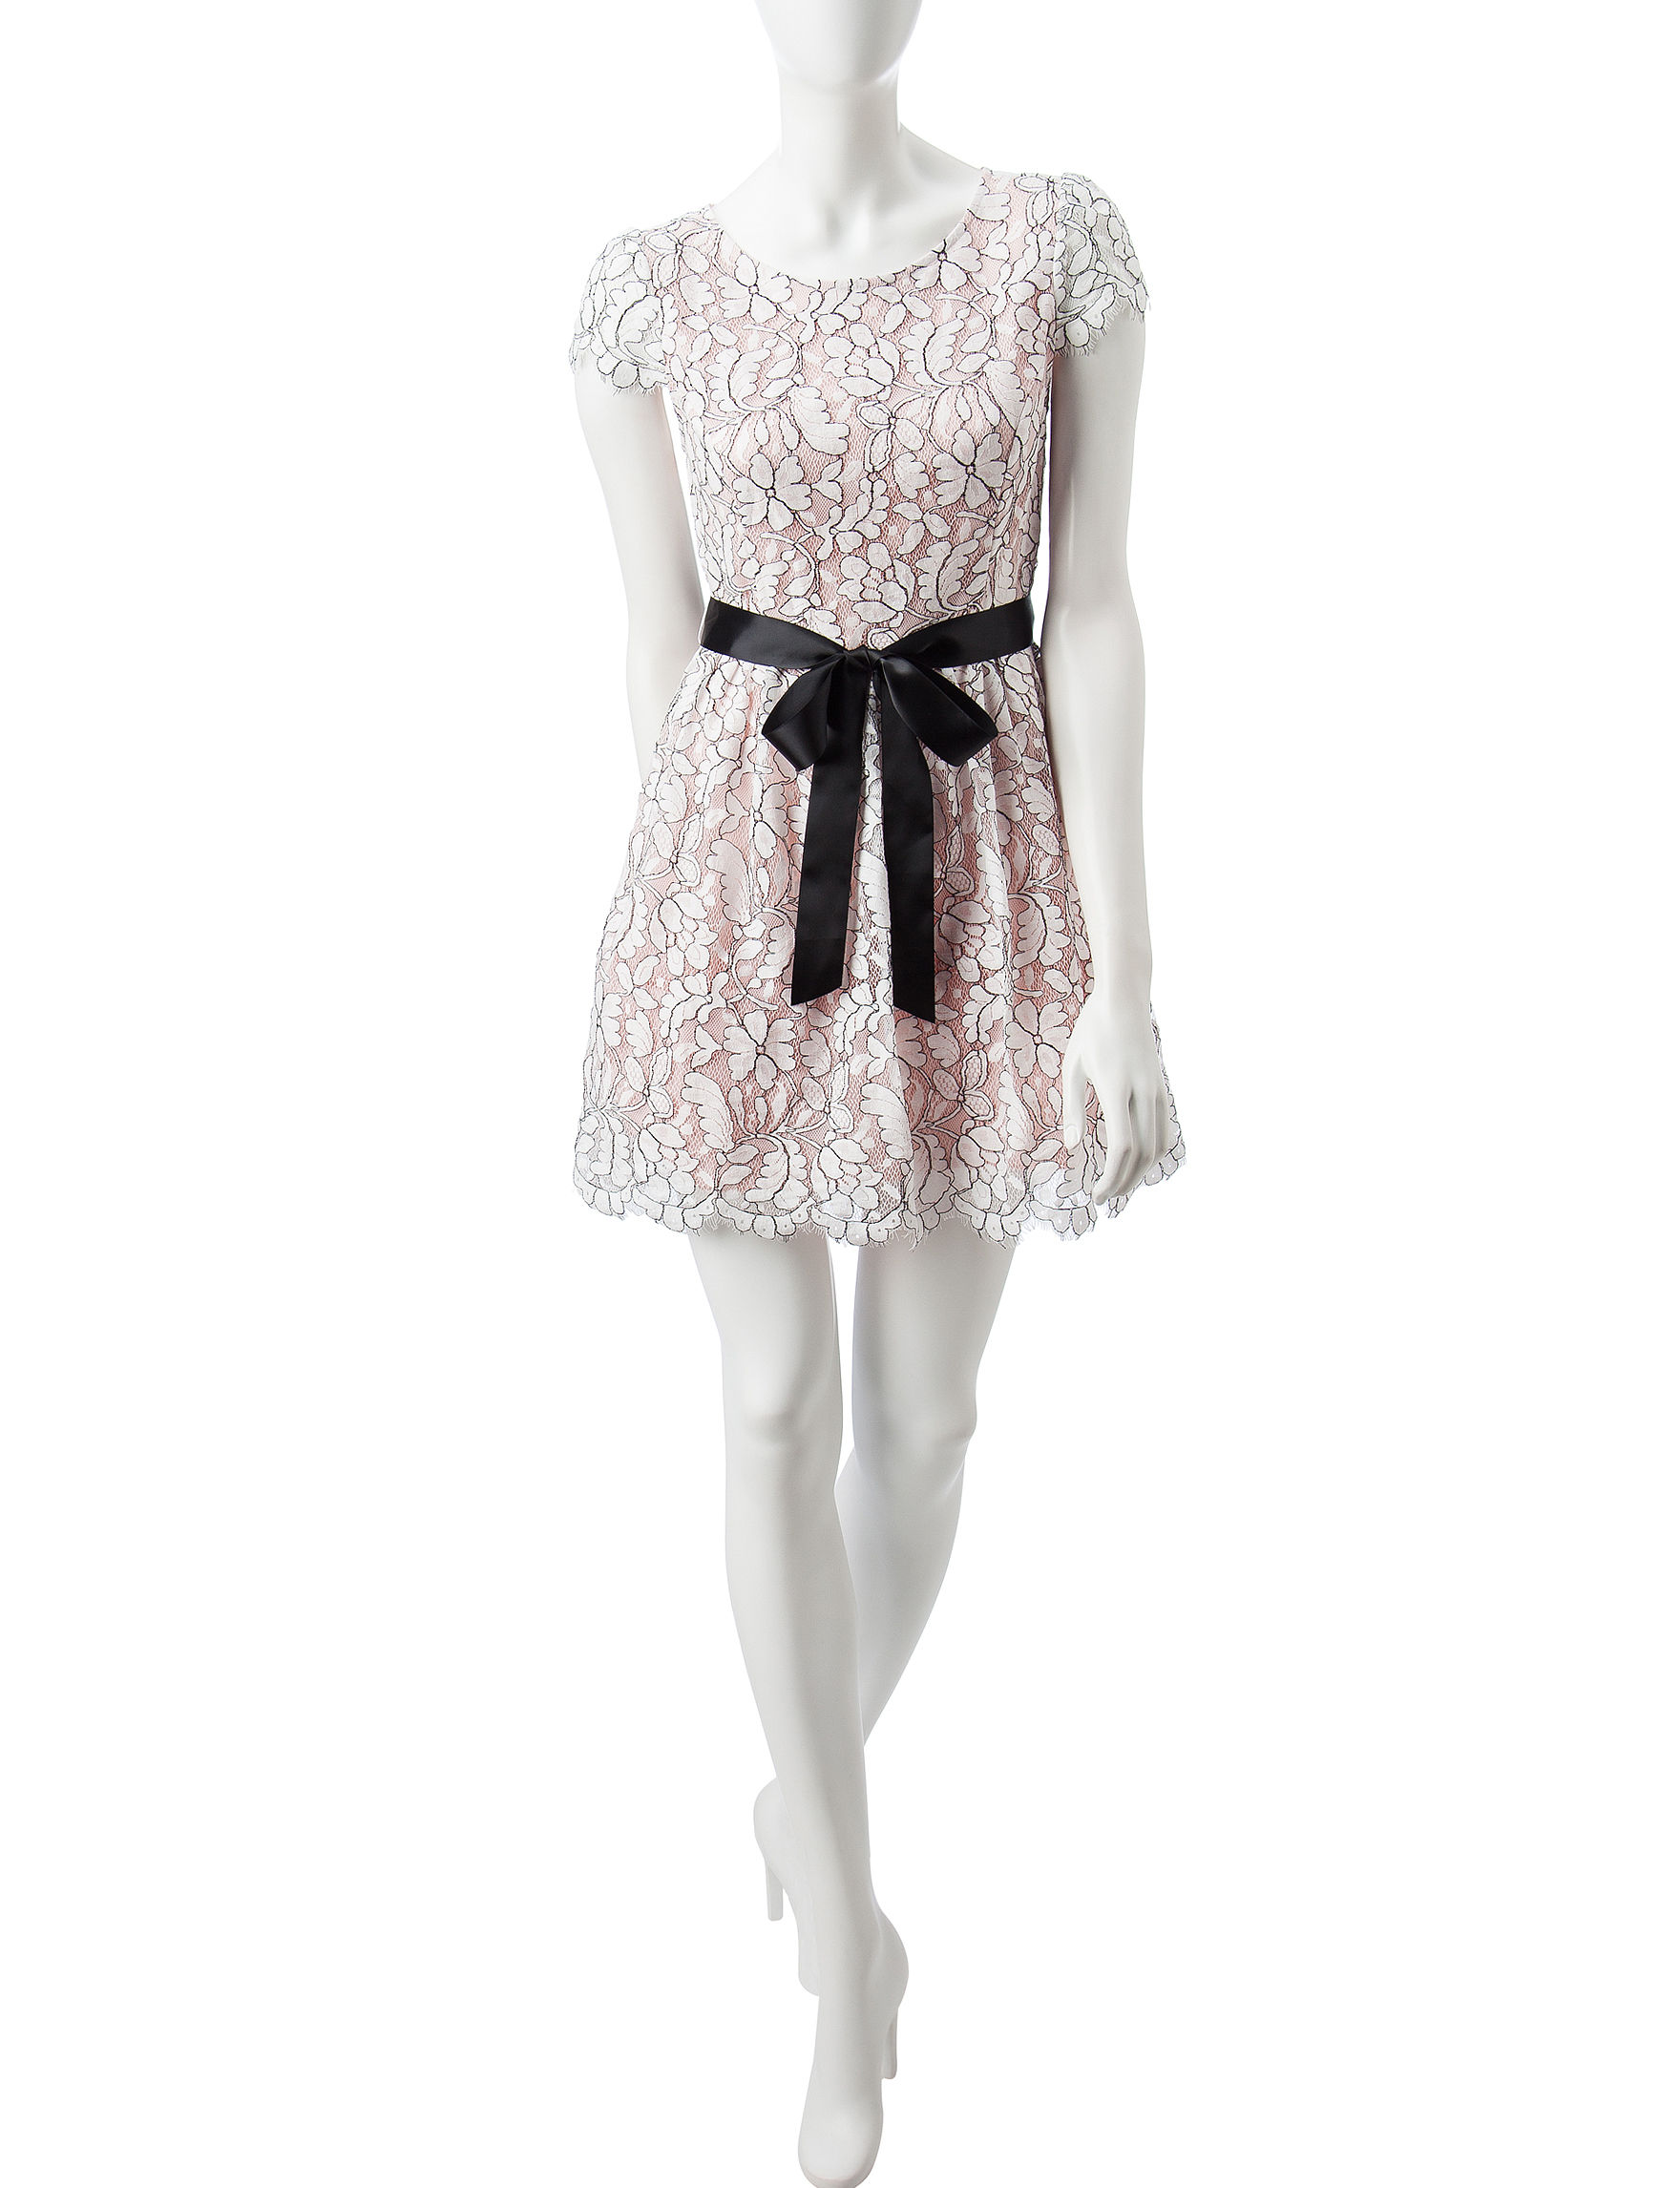 Bailey Blue Pink / White / Black Cocktail & Party Fit & Flare Dresses